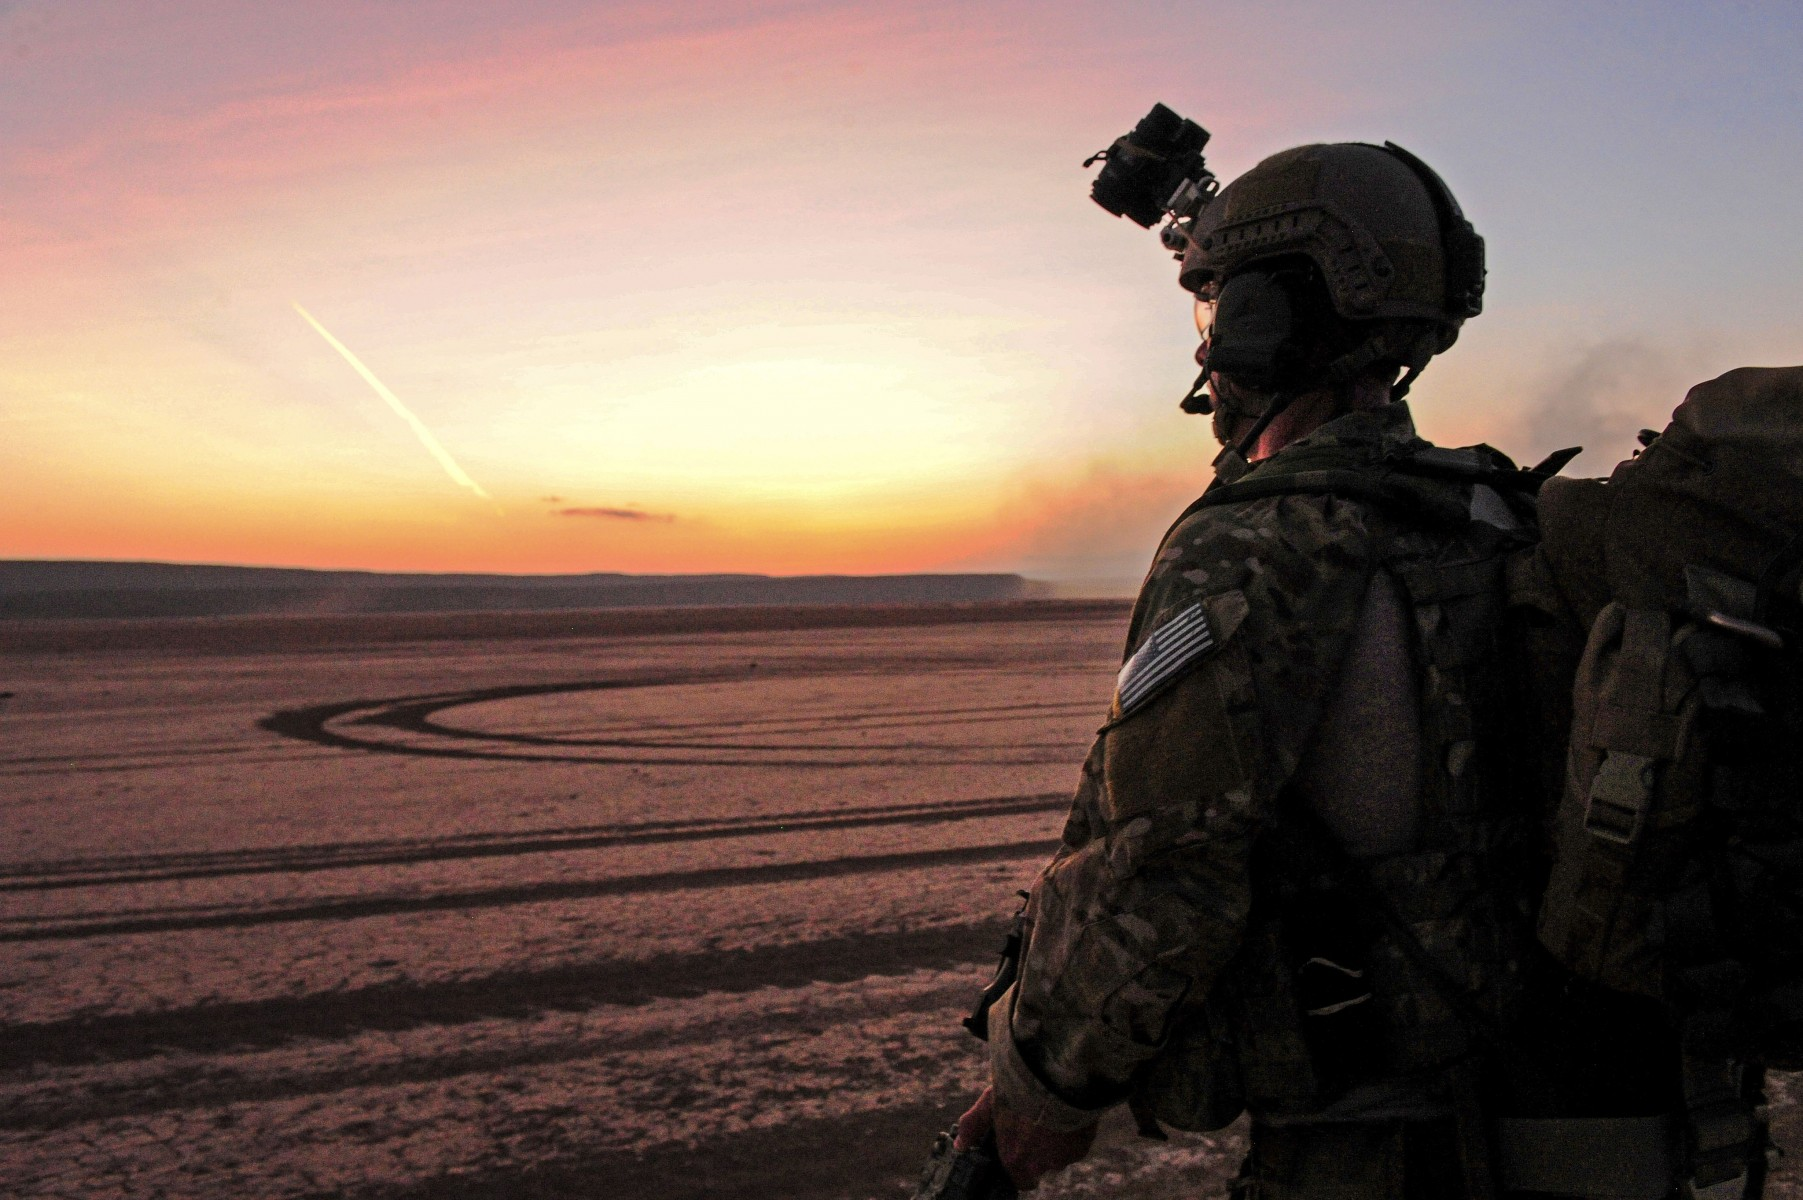 U.S. Air Force pararescueman participates in a training exercise Nov. 28, 2012 in the Grand Bara Desert, Djibouti.